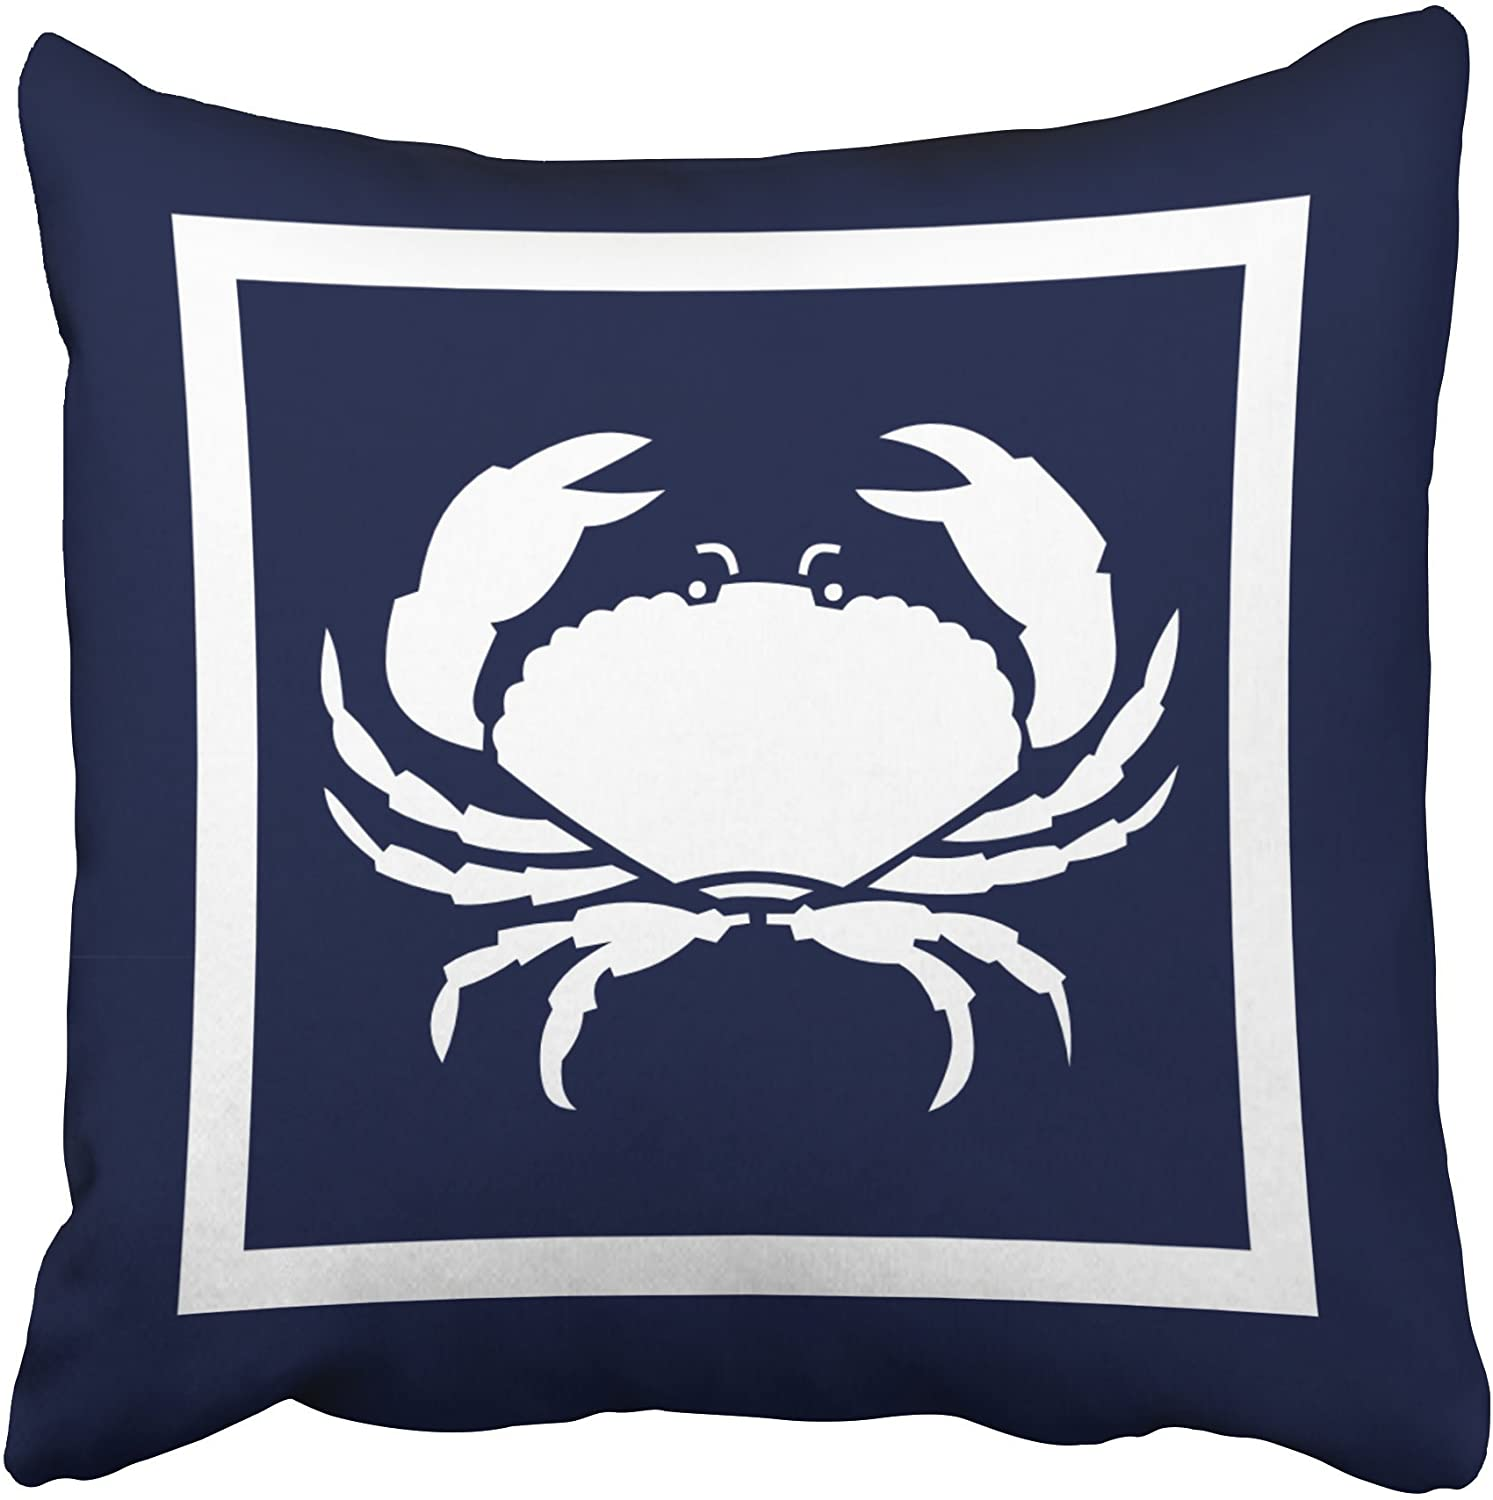 antoipyns Accrocn Square Throw Pillow Covers Outdoor Nautical Crab White Navy Reversable Outdoor Pillowcases Polyester (18 X 18 ) Inch with Hidden Zipper Home Sofa Cushion Decorative Pillowcase